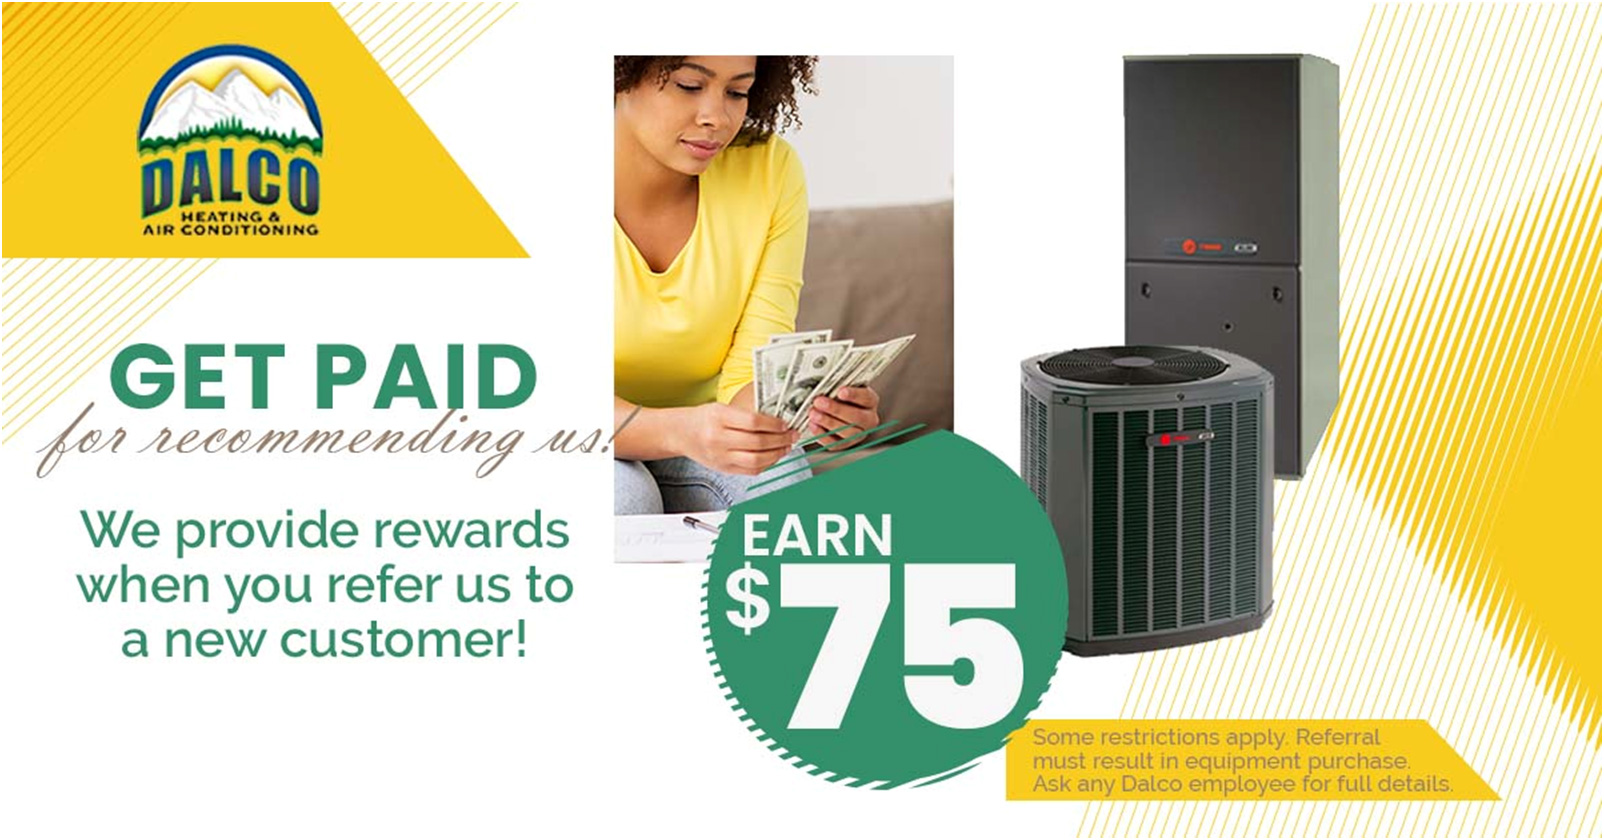 Promotional graphic about the $75 money Dalco will pay for some customer referrals.